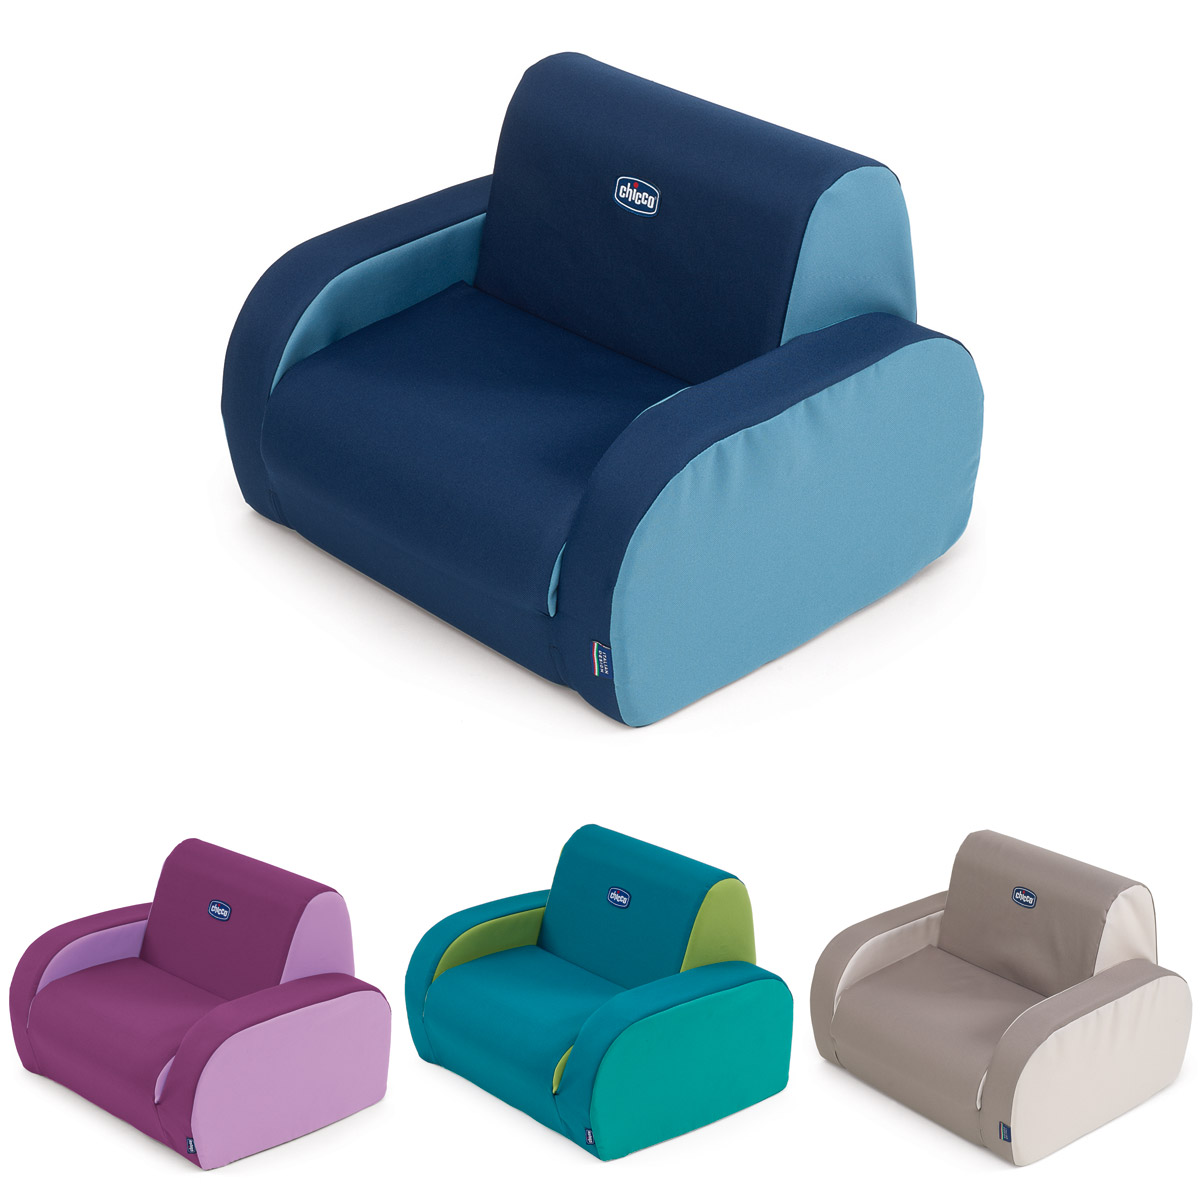 Chicco Sessel Twist Chicco Babysessel Twist Kindersessel Neu Design 2014 Farbe